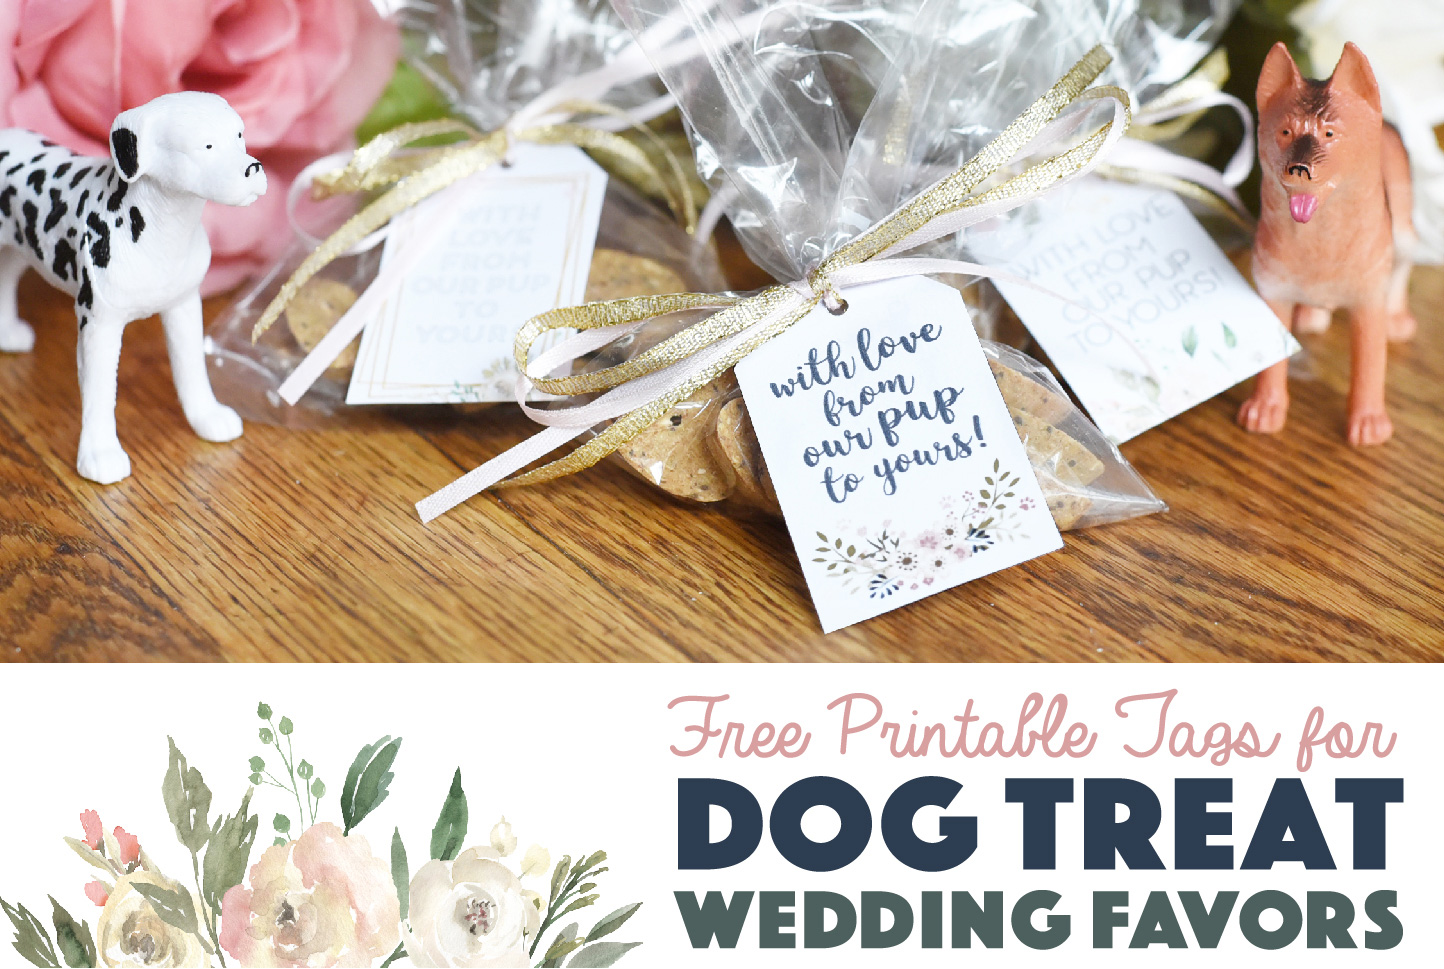 Free Printable Tags For Dog Treat Wedding Favors The Broke Dog